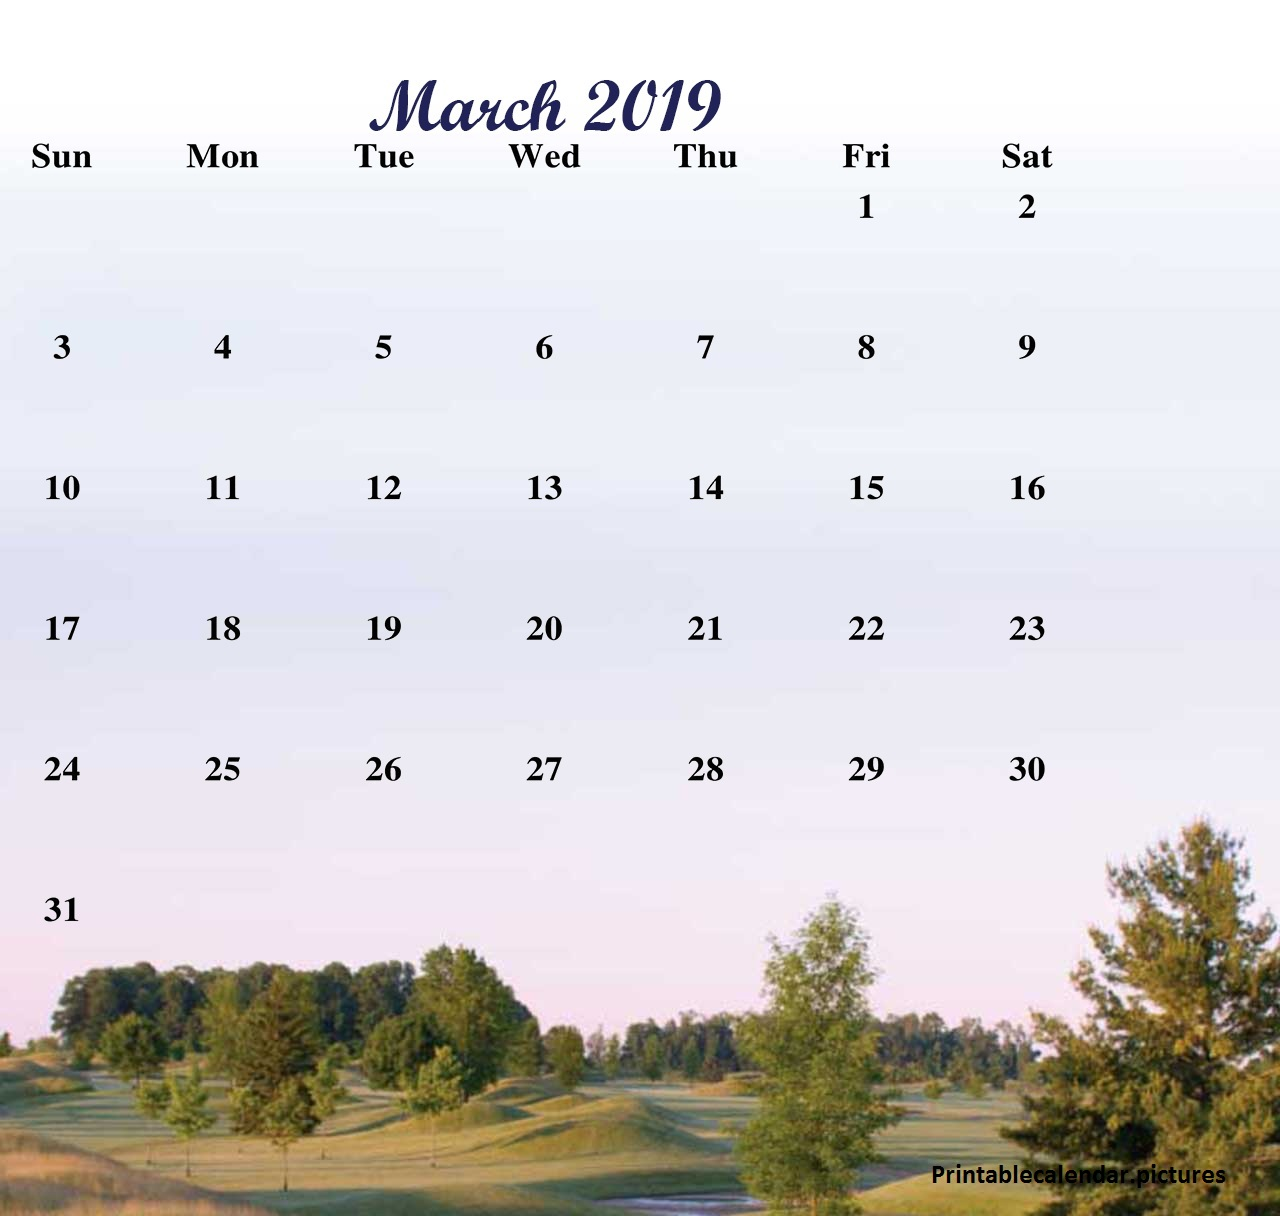 March 2019 Calendar Wallpaper